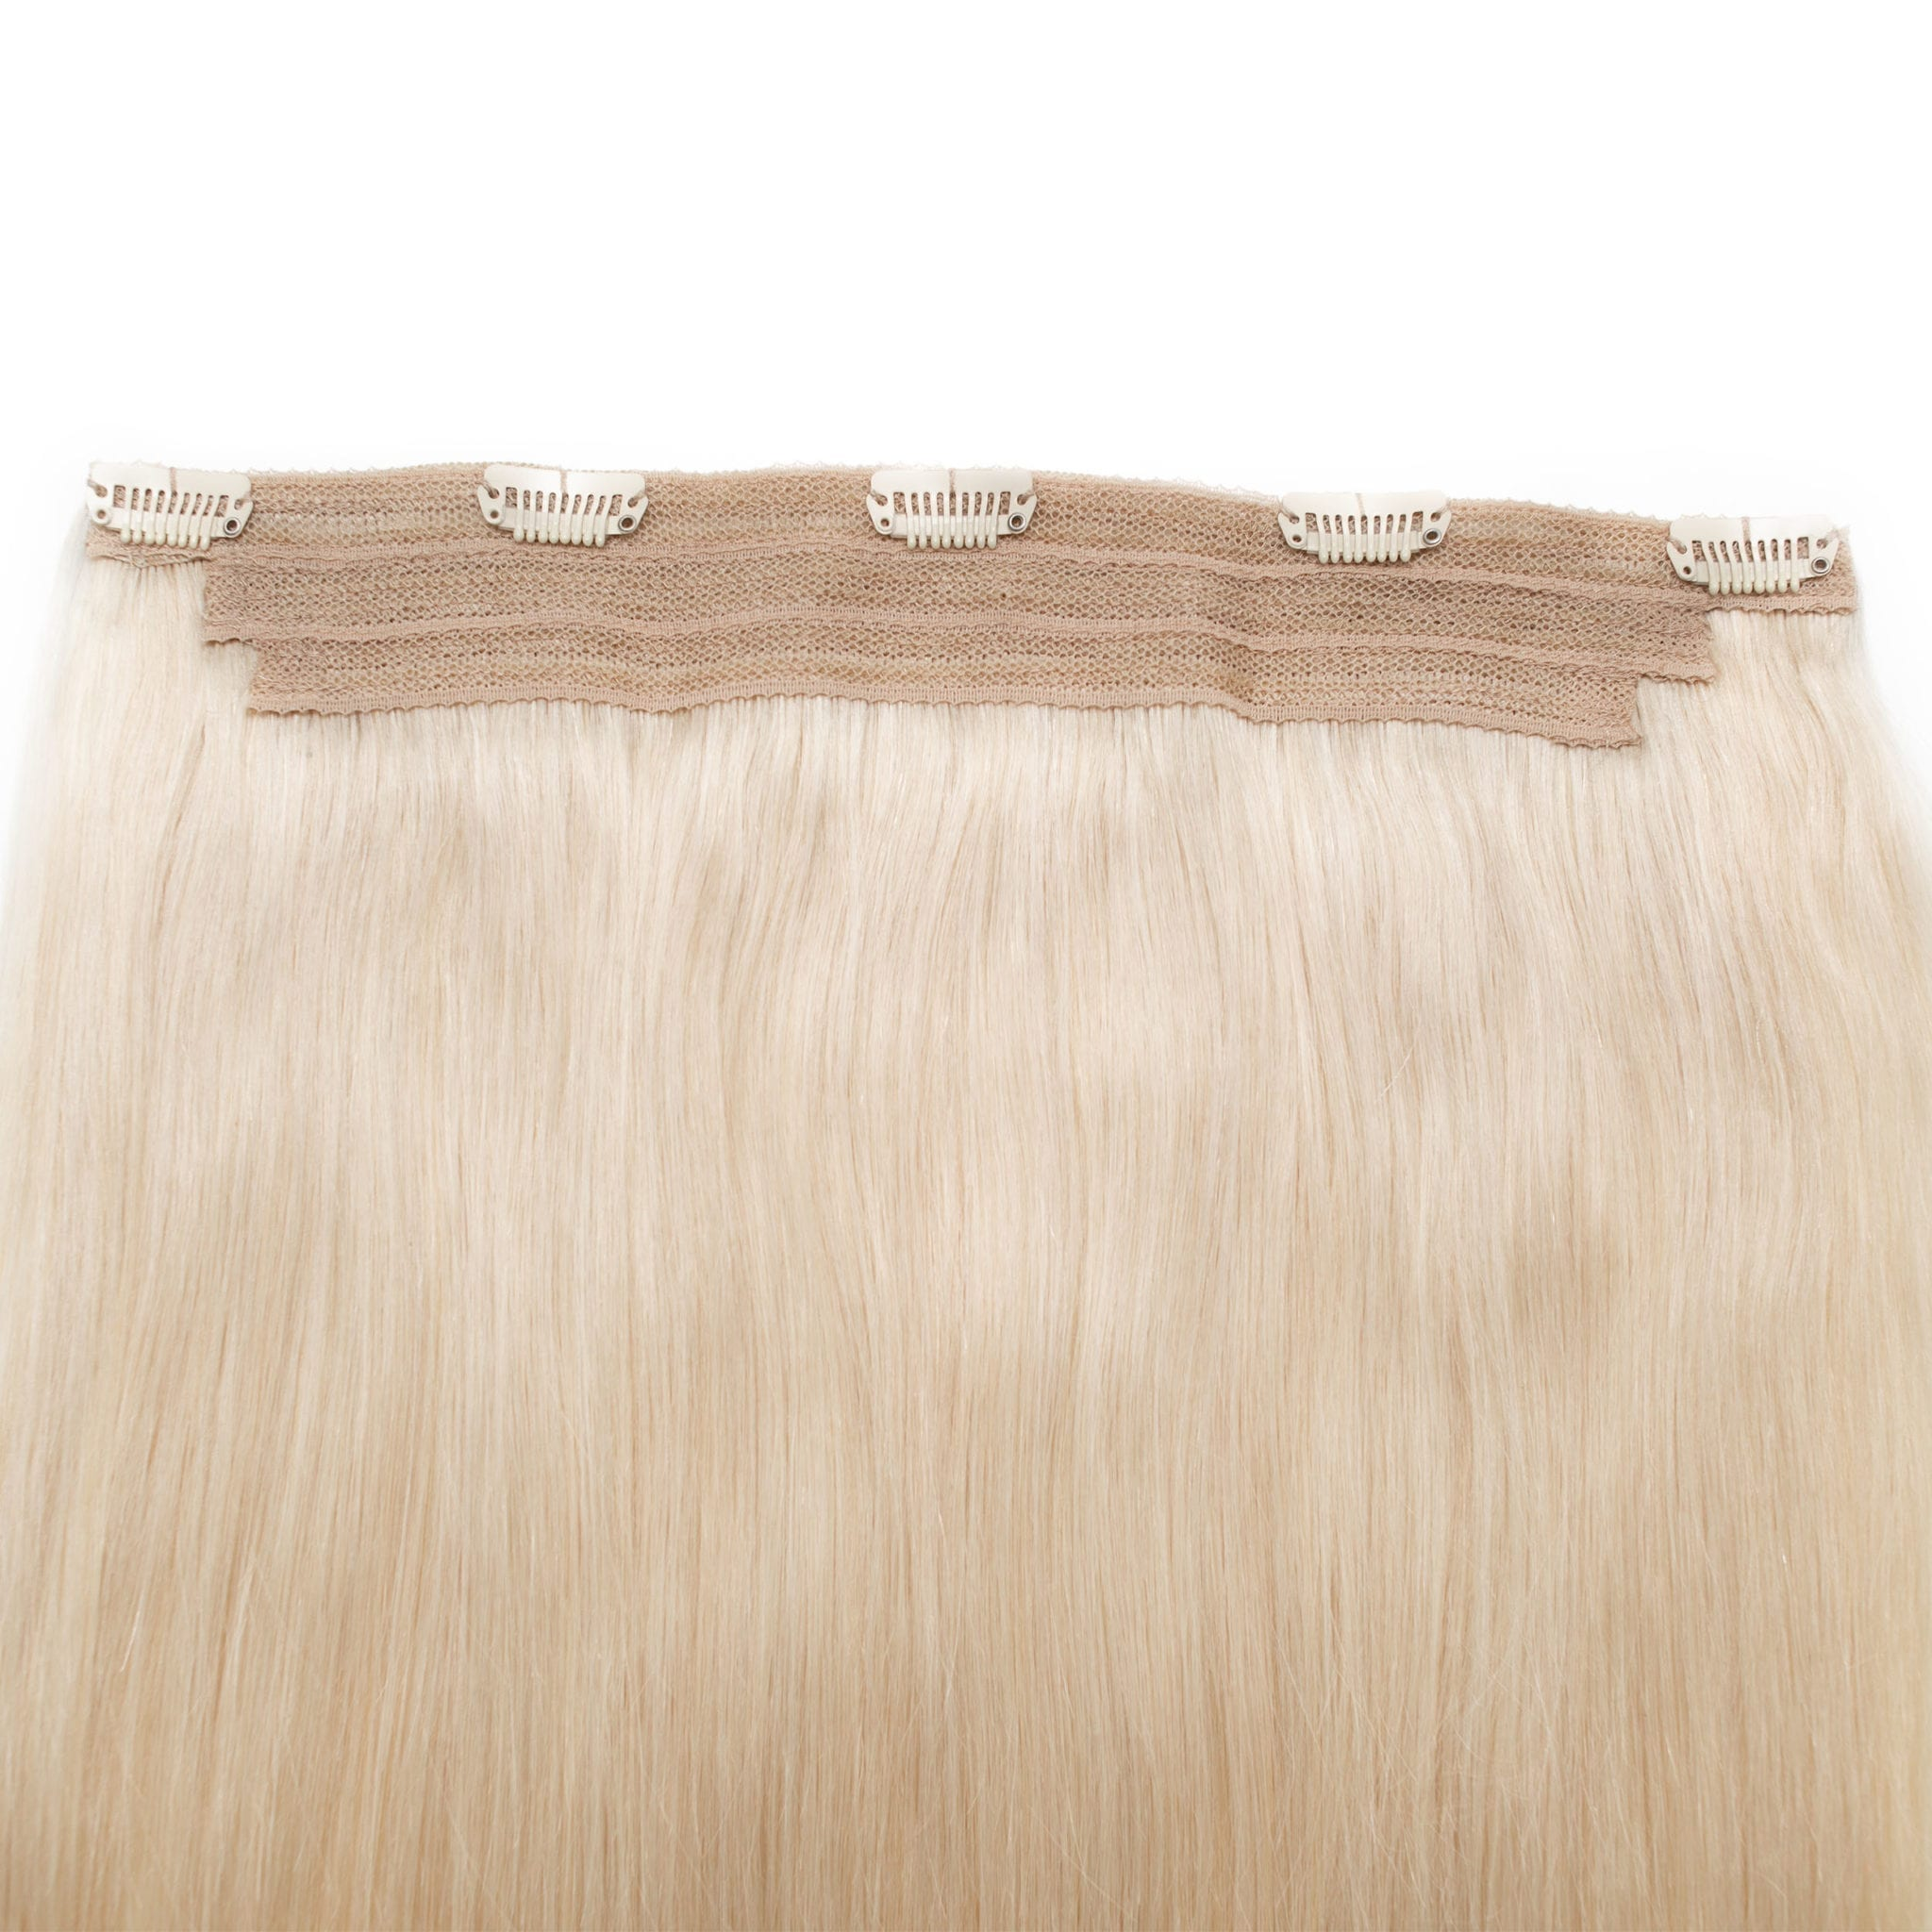 Edwards And Co. Extentions - Milkshake in 1 piece